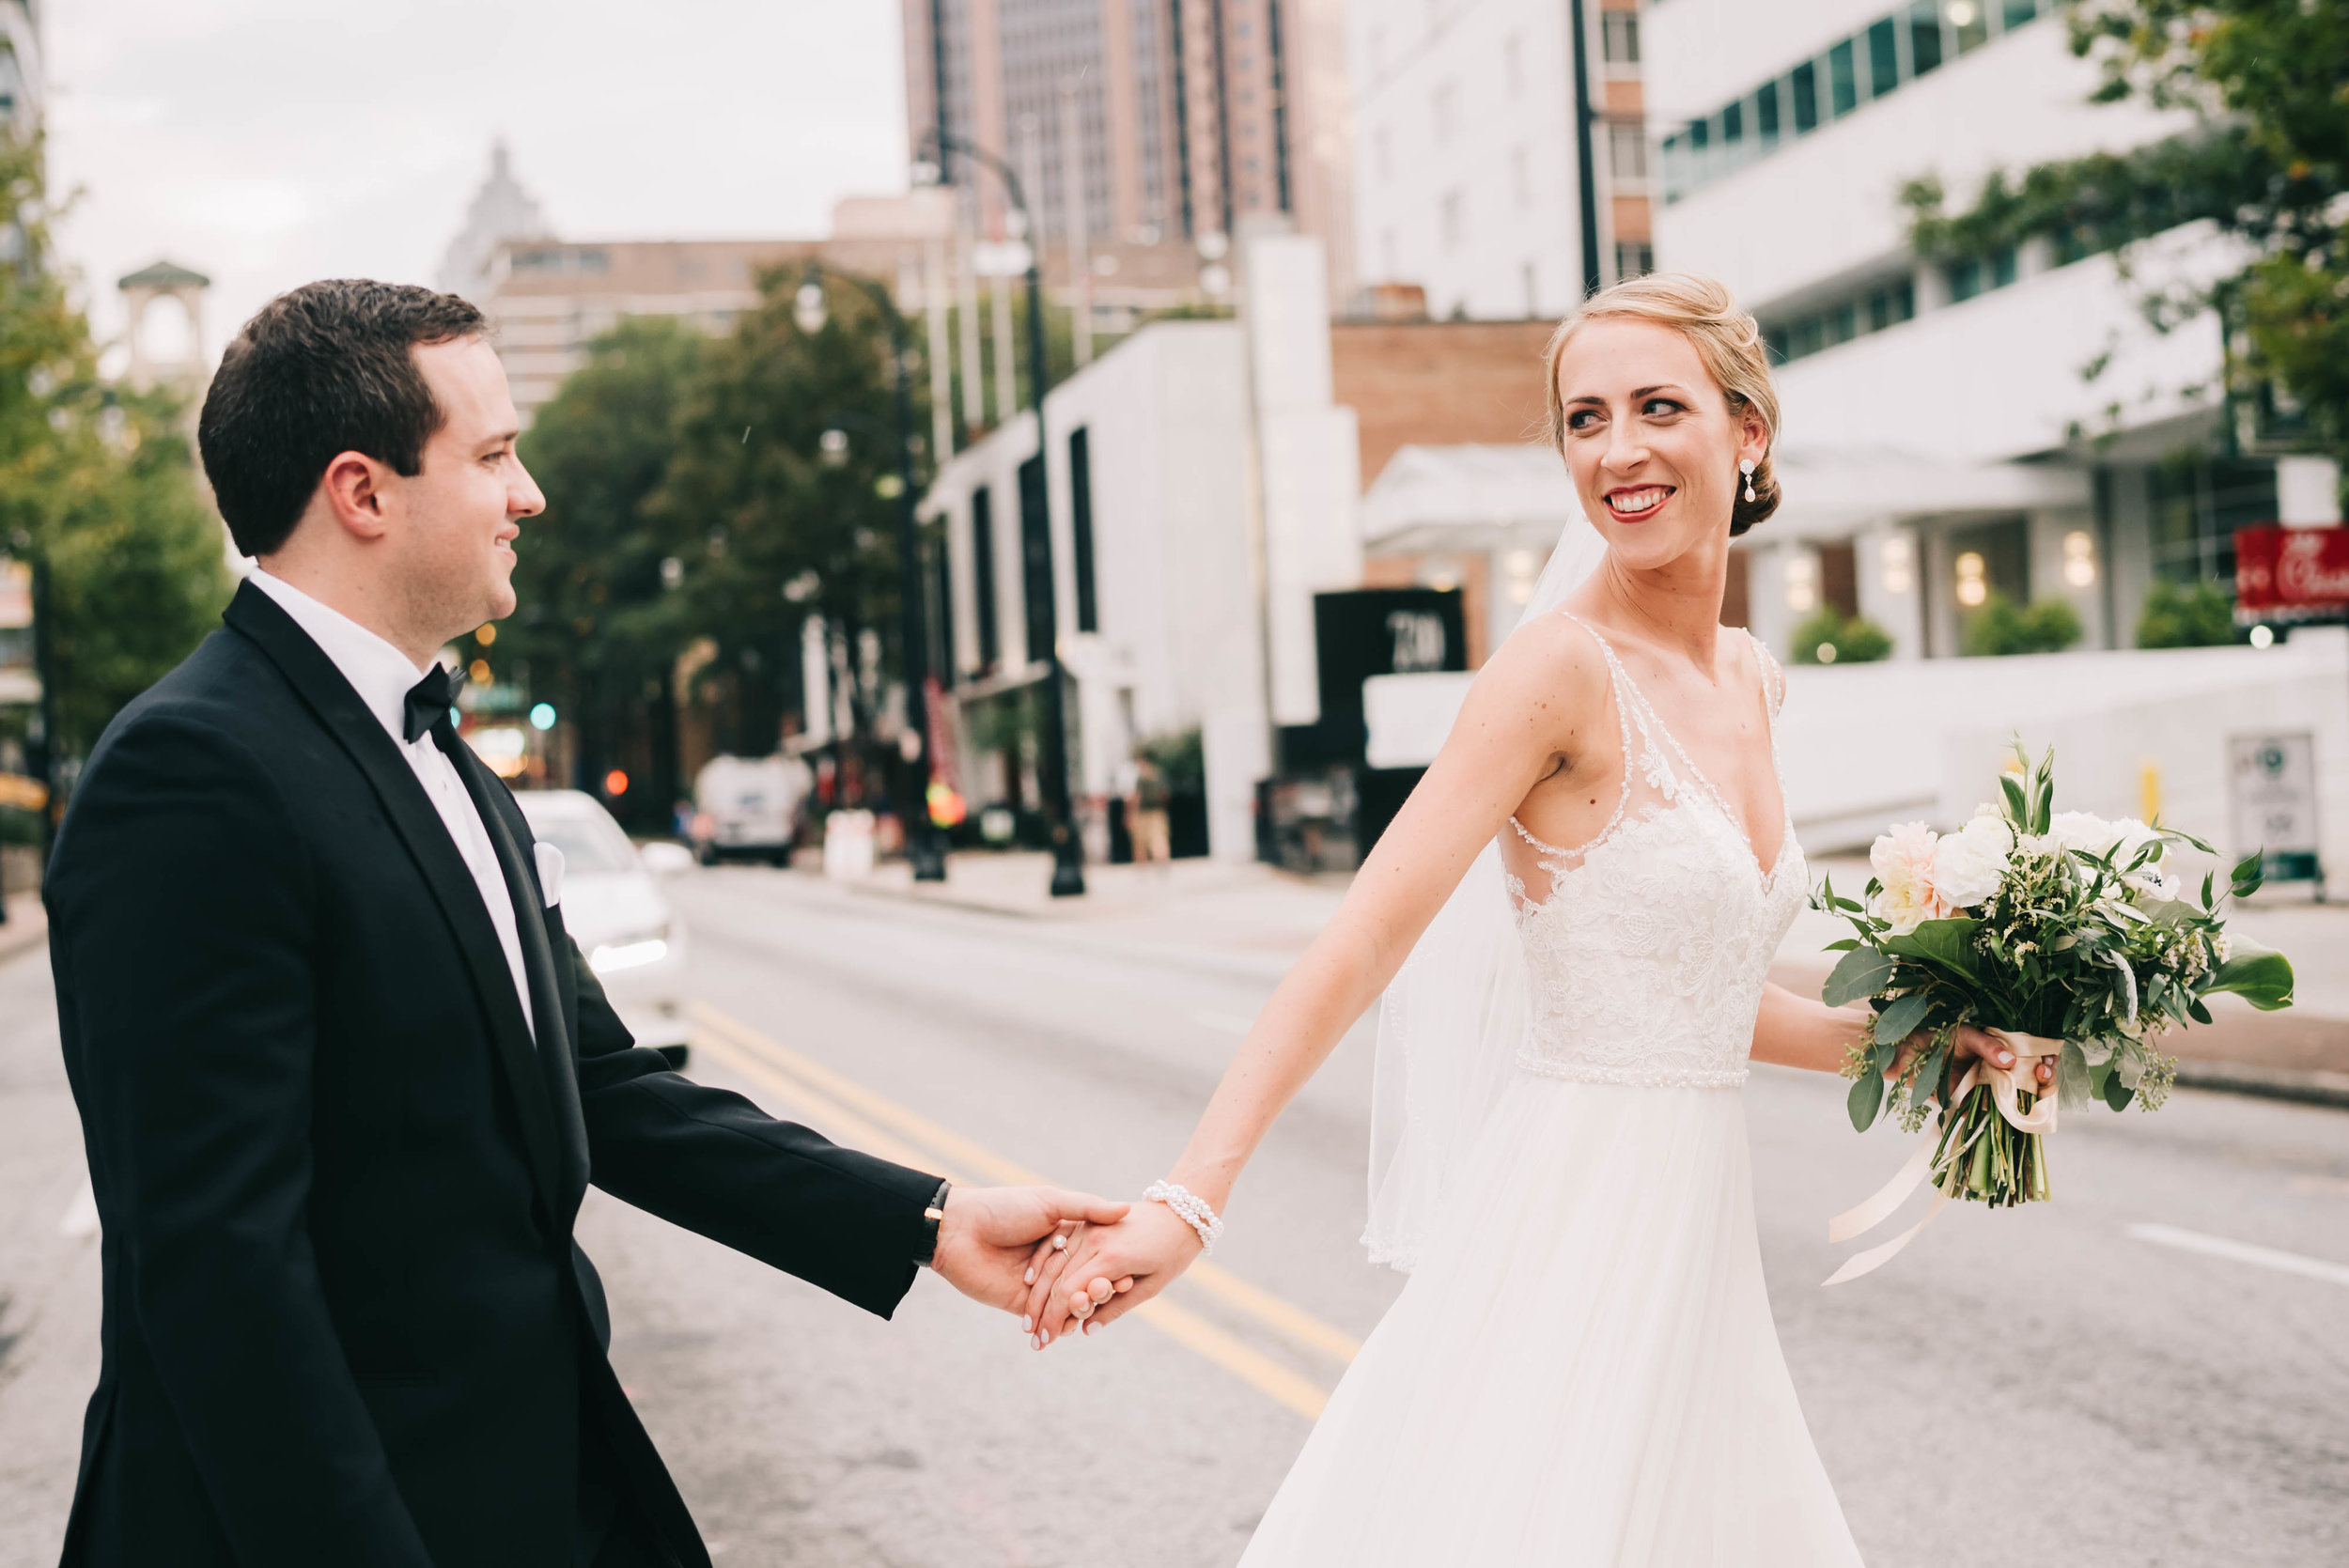 atlanta georgia midtown modern timeless nontraditional wedding photographer-712.jpg